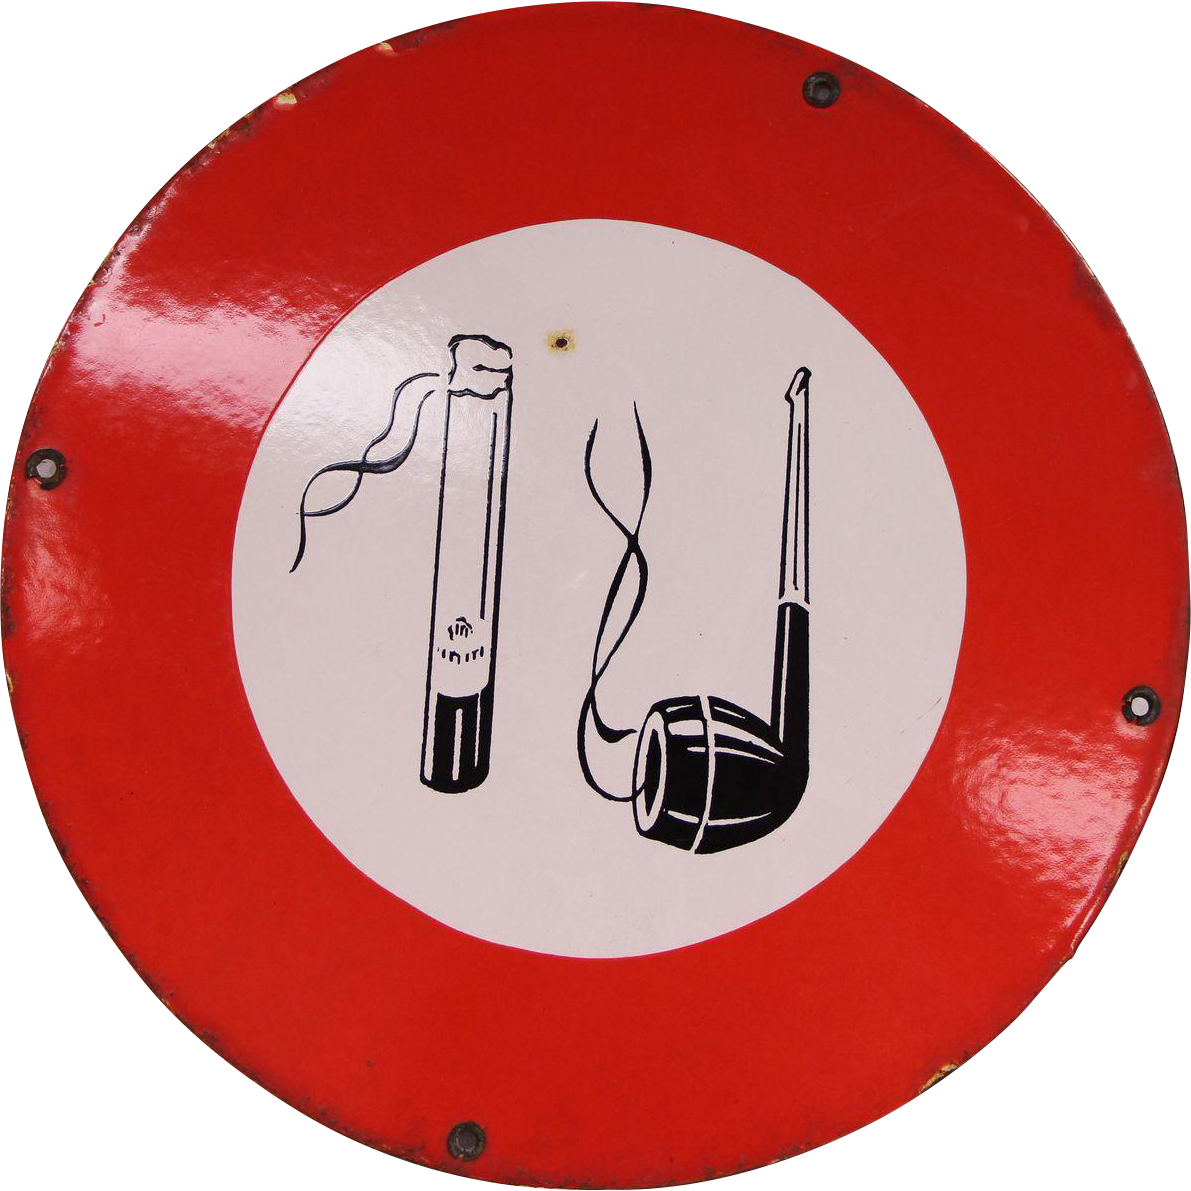 French pipe & cigarette metal sign